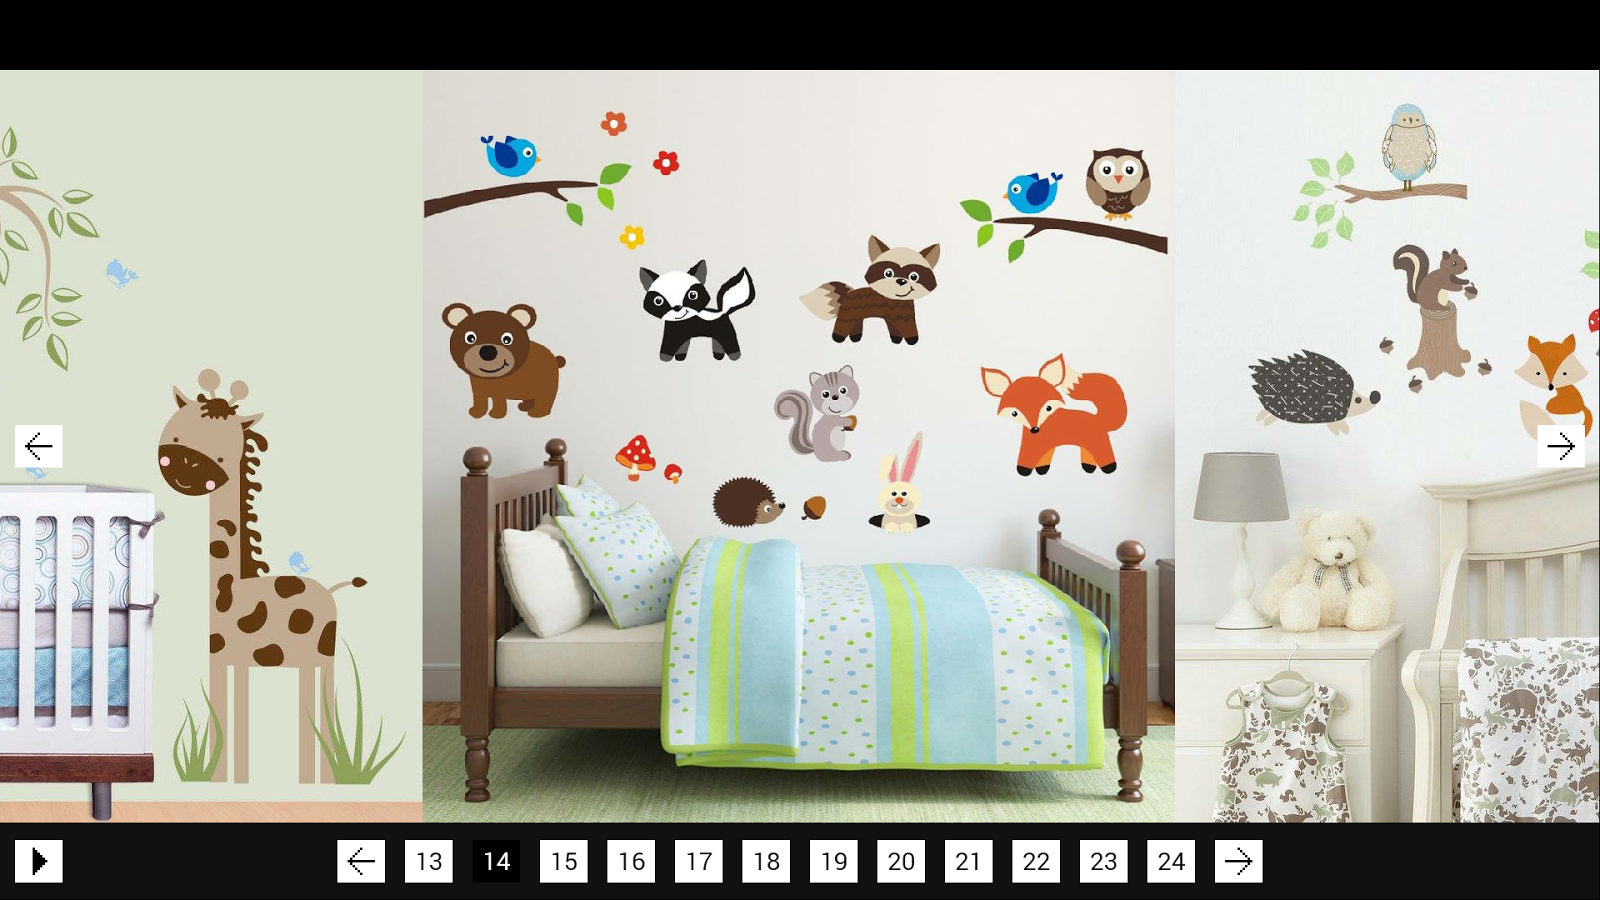 Wall Art Decor Android Apps On Google Play